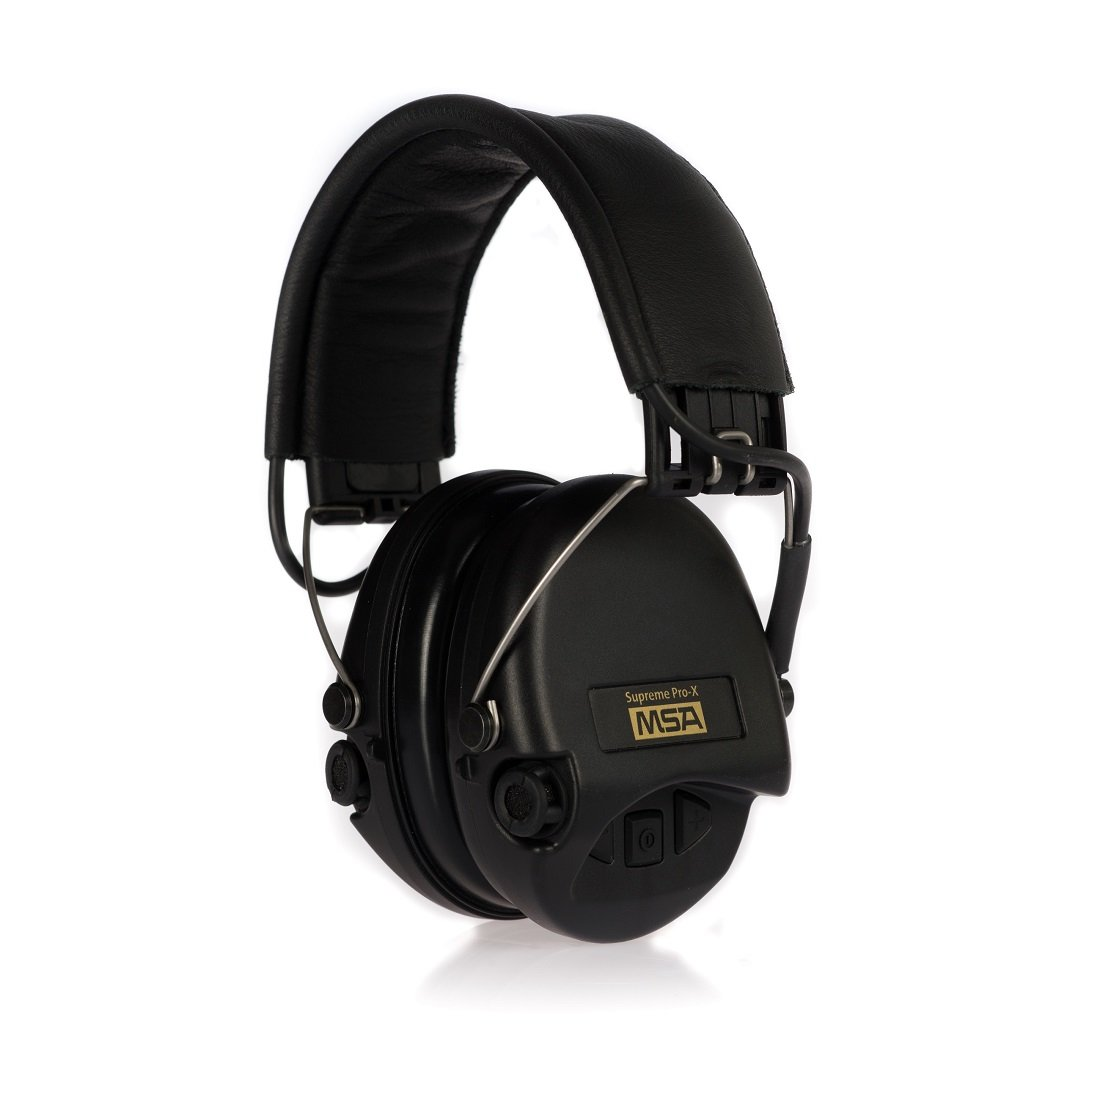 MSA Sordin Supreme Pro X - Standard Edition - Electronic Earmuff with black leather band, black cups and foam seals fitted by MSA Sordin